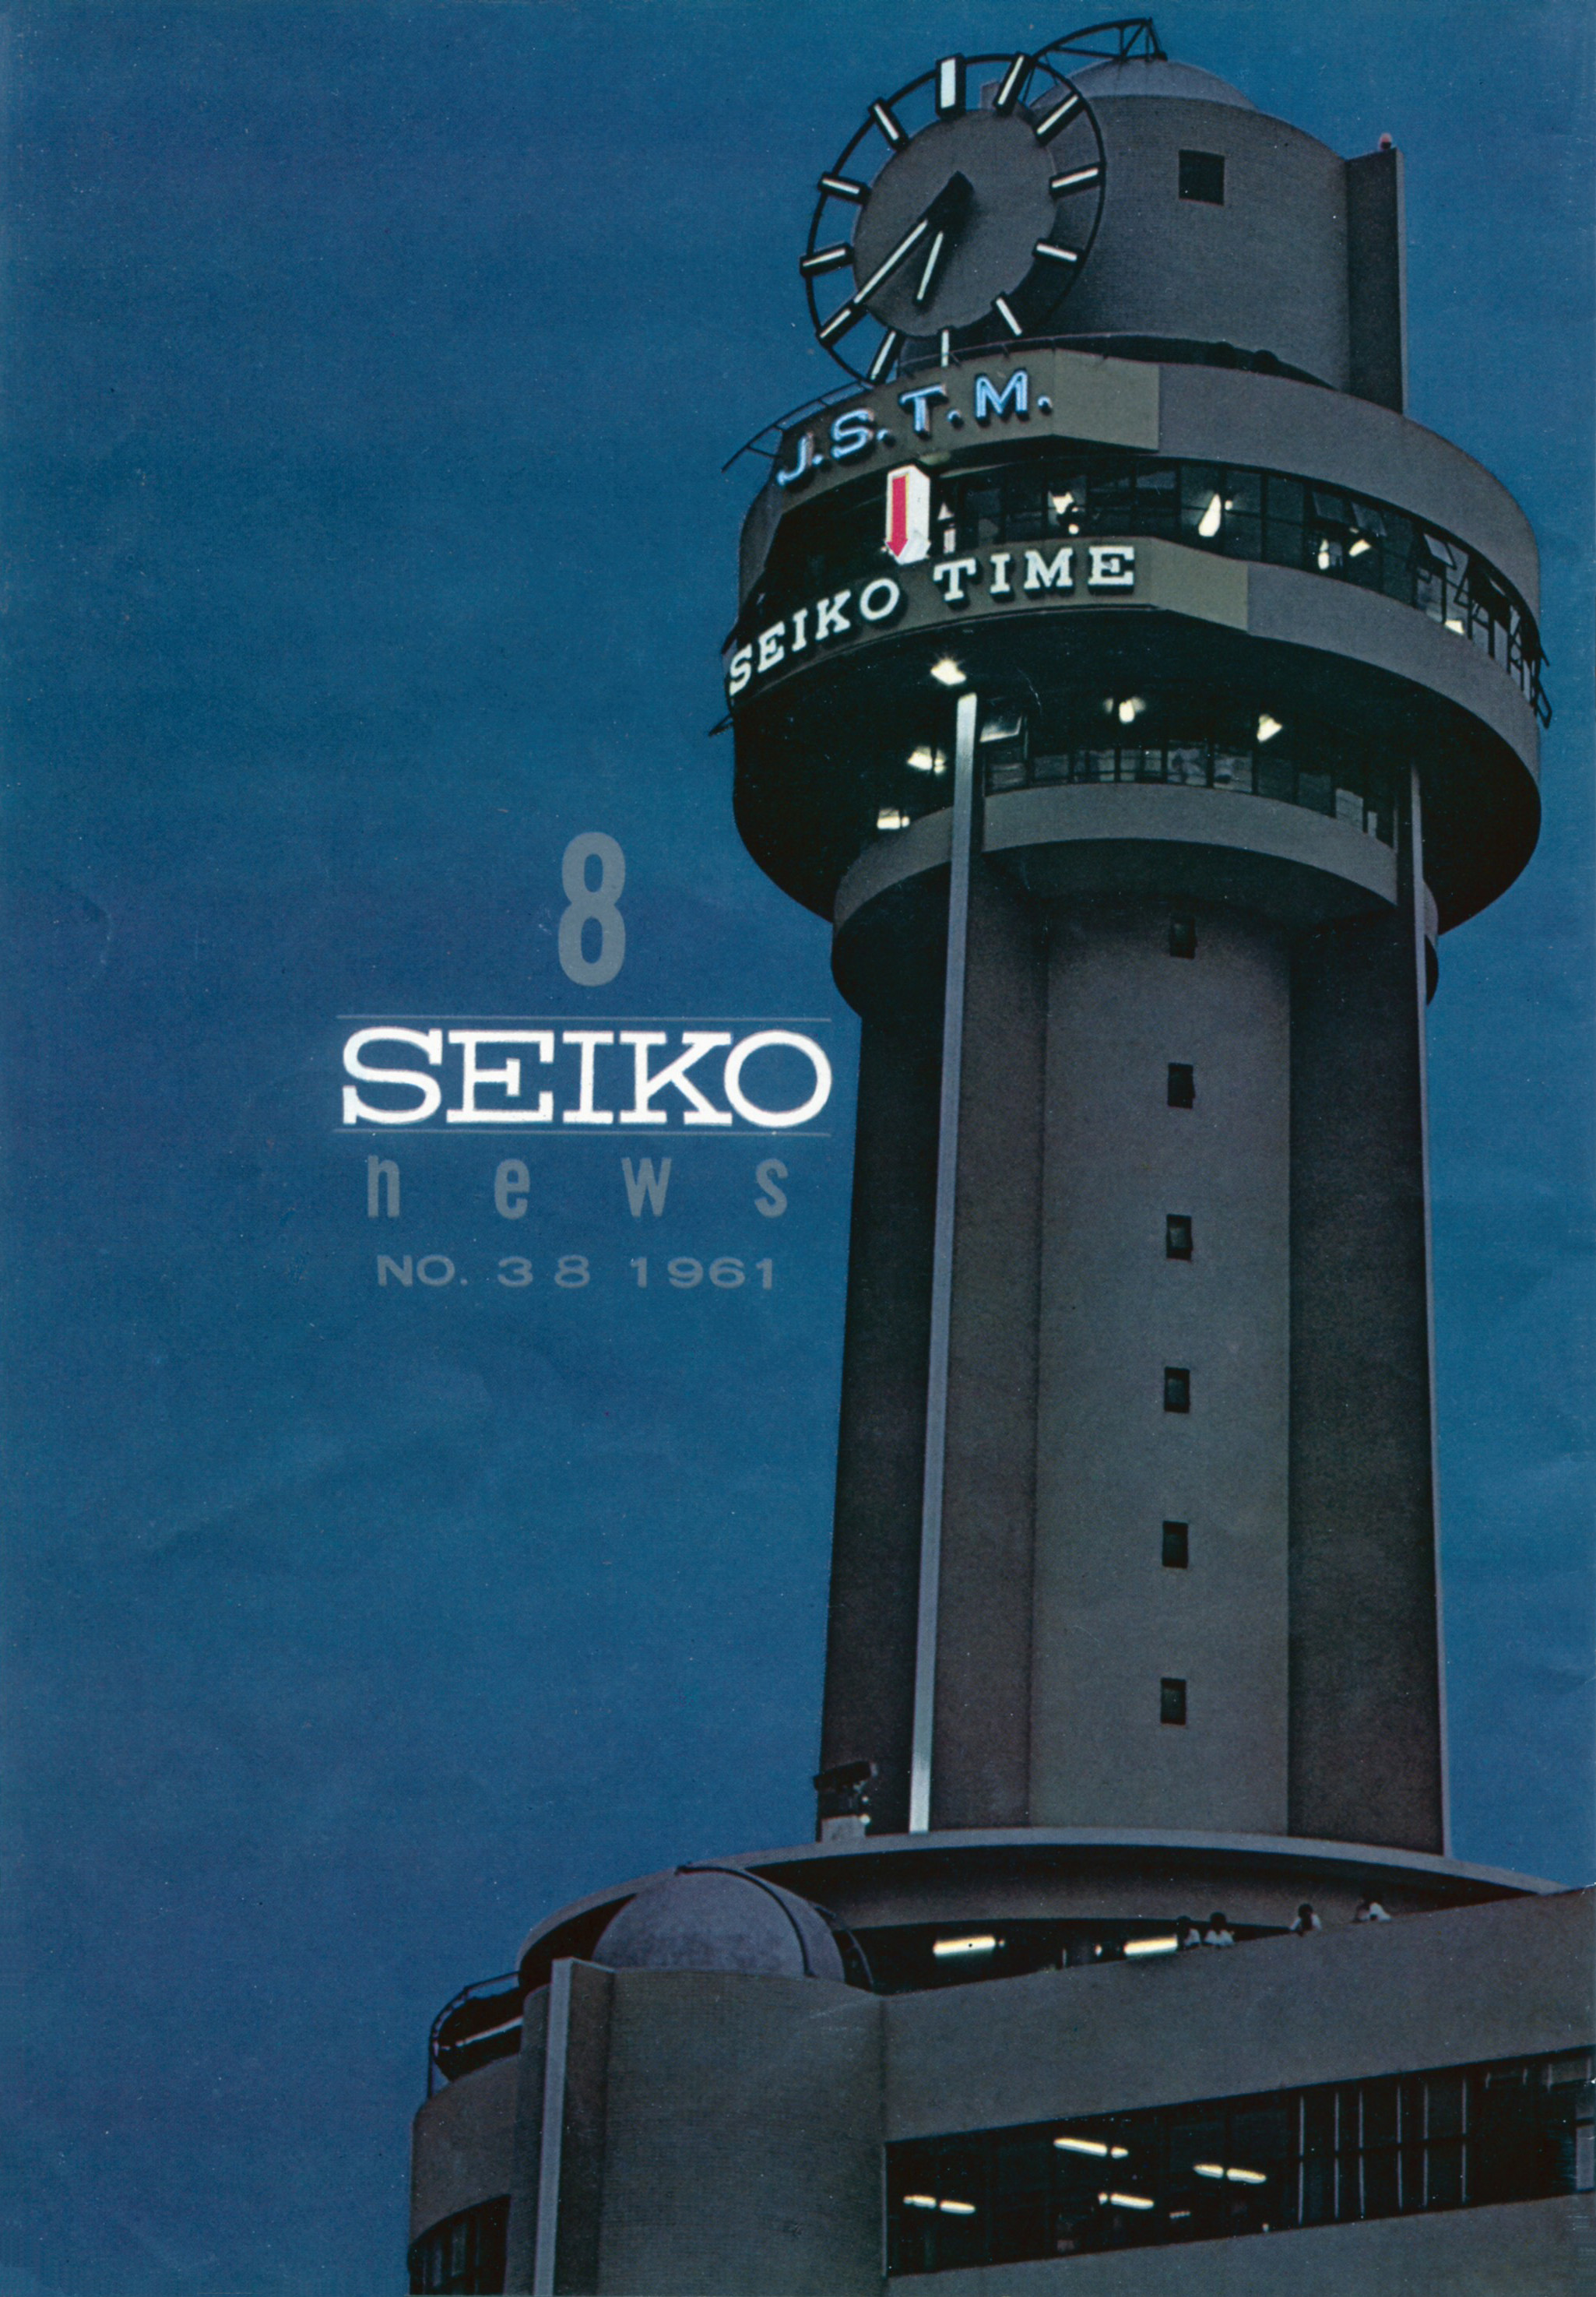 Seiko News No.38 1961